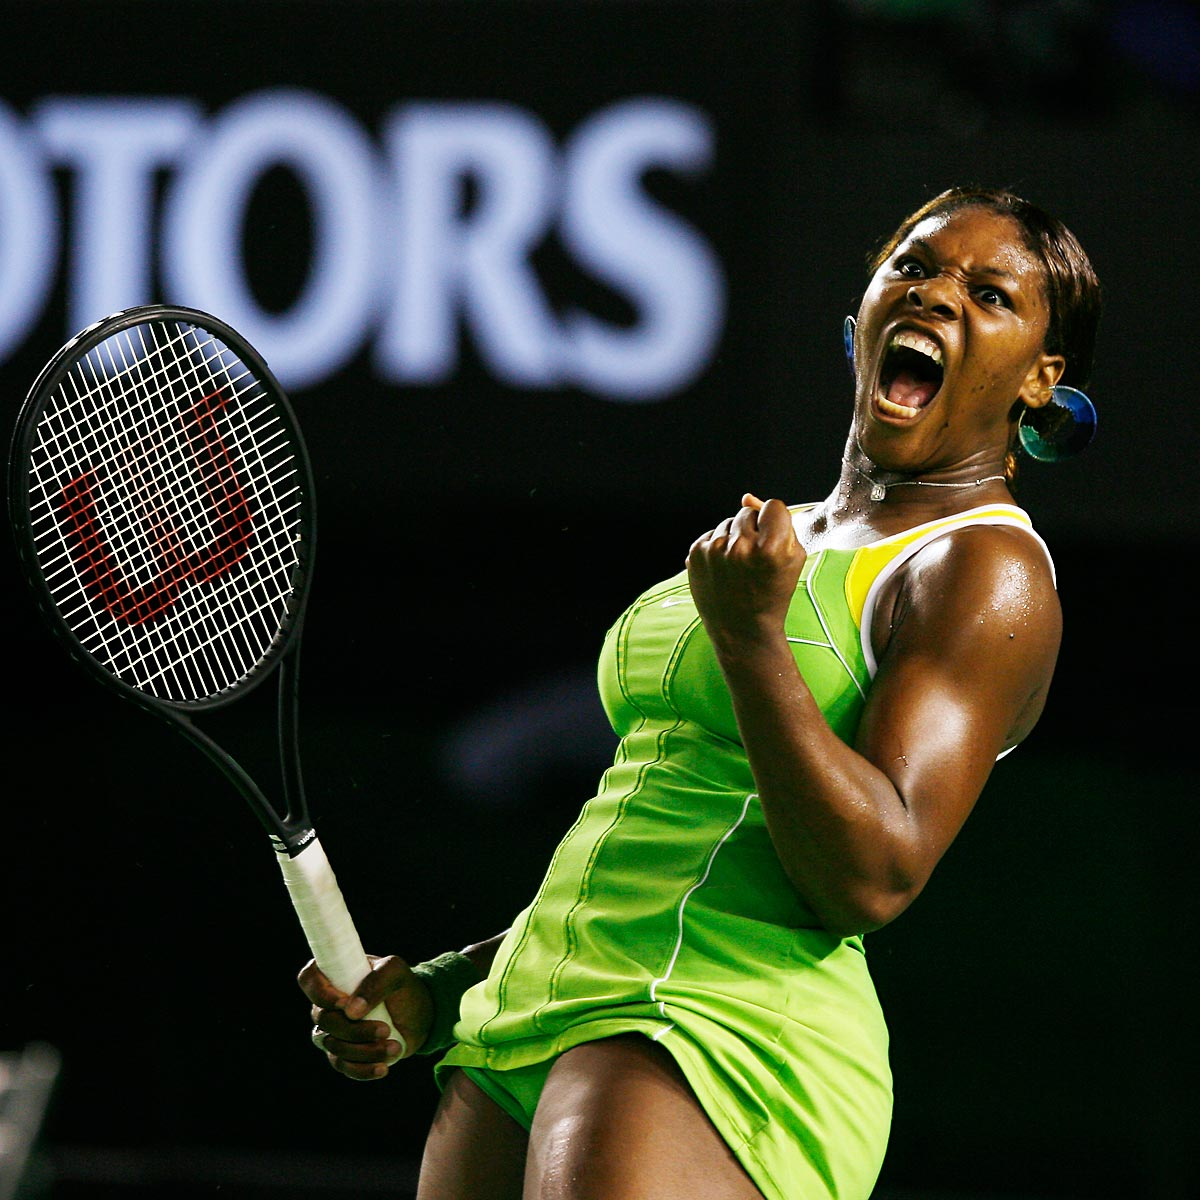 Australian Open, Jan. 21, 2007 | Serena Williams celebrates a point during the 2007 Australian Open finals against Maria Sharapova. Williams, who was unseeded because of her World no. 81 ranking, continued on to beat Sharapova and win the tournament.